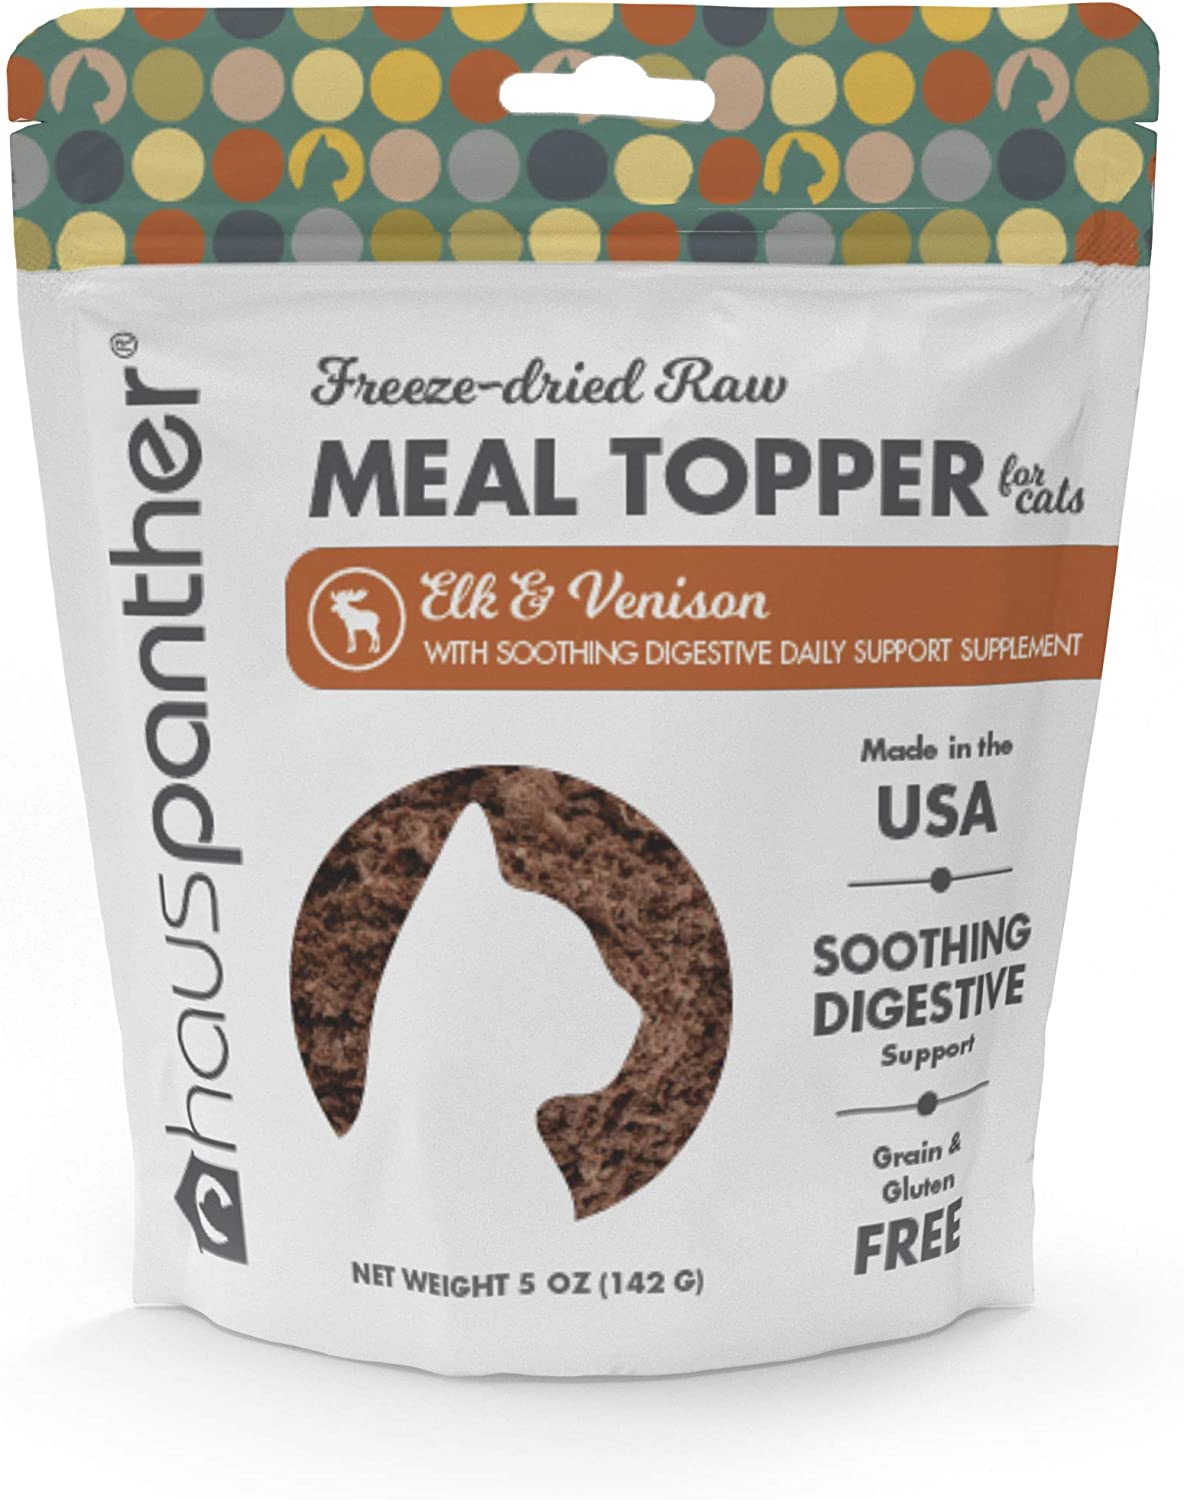 Hauspanther Freeze-Dried Raw Elk & Venison Cat Food Topper with Soothing Digestive Daily Support Supplement 5 oz